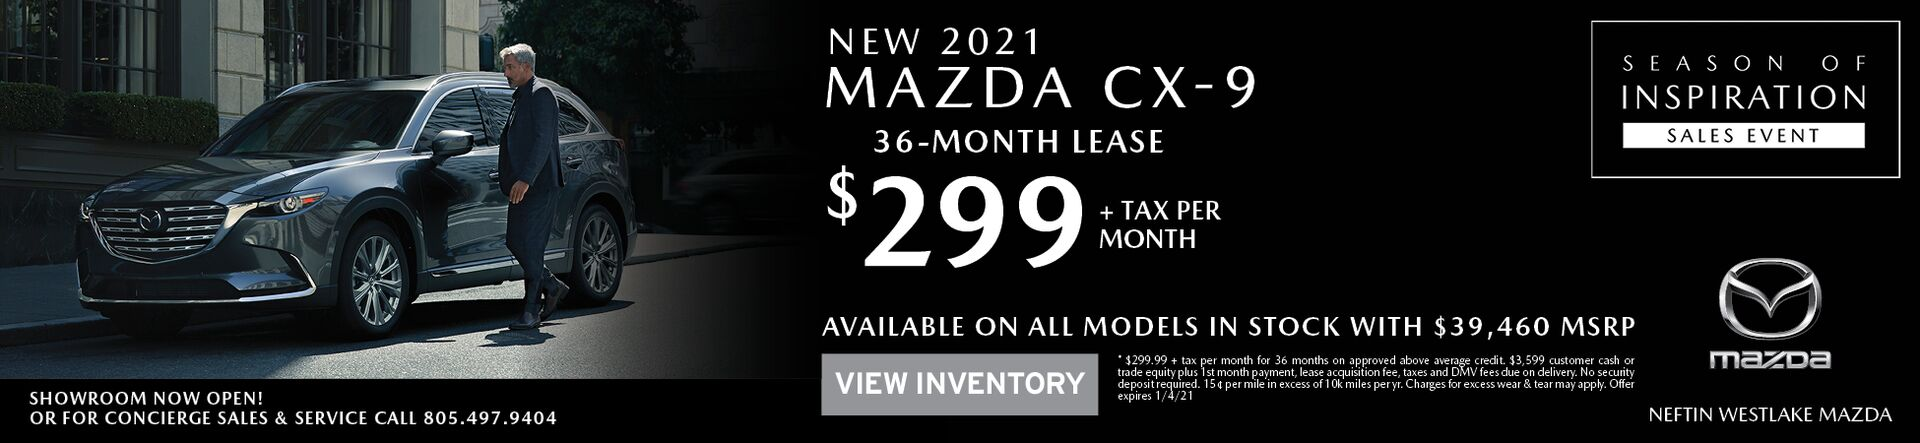 December '20 CX-9 Lease Offer